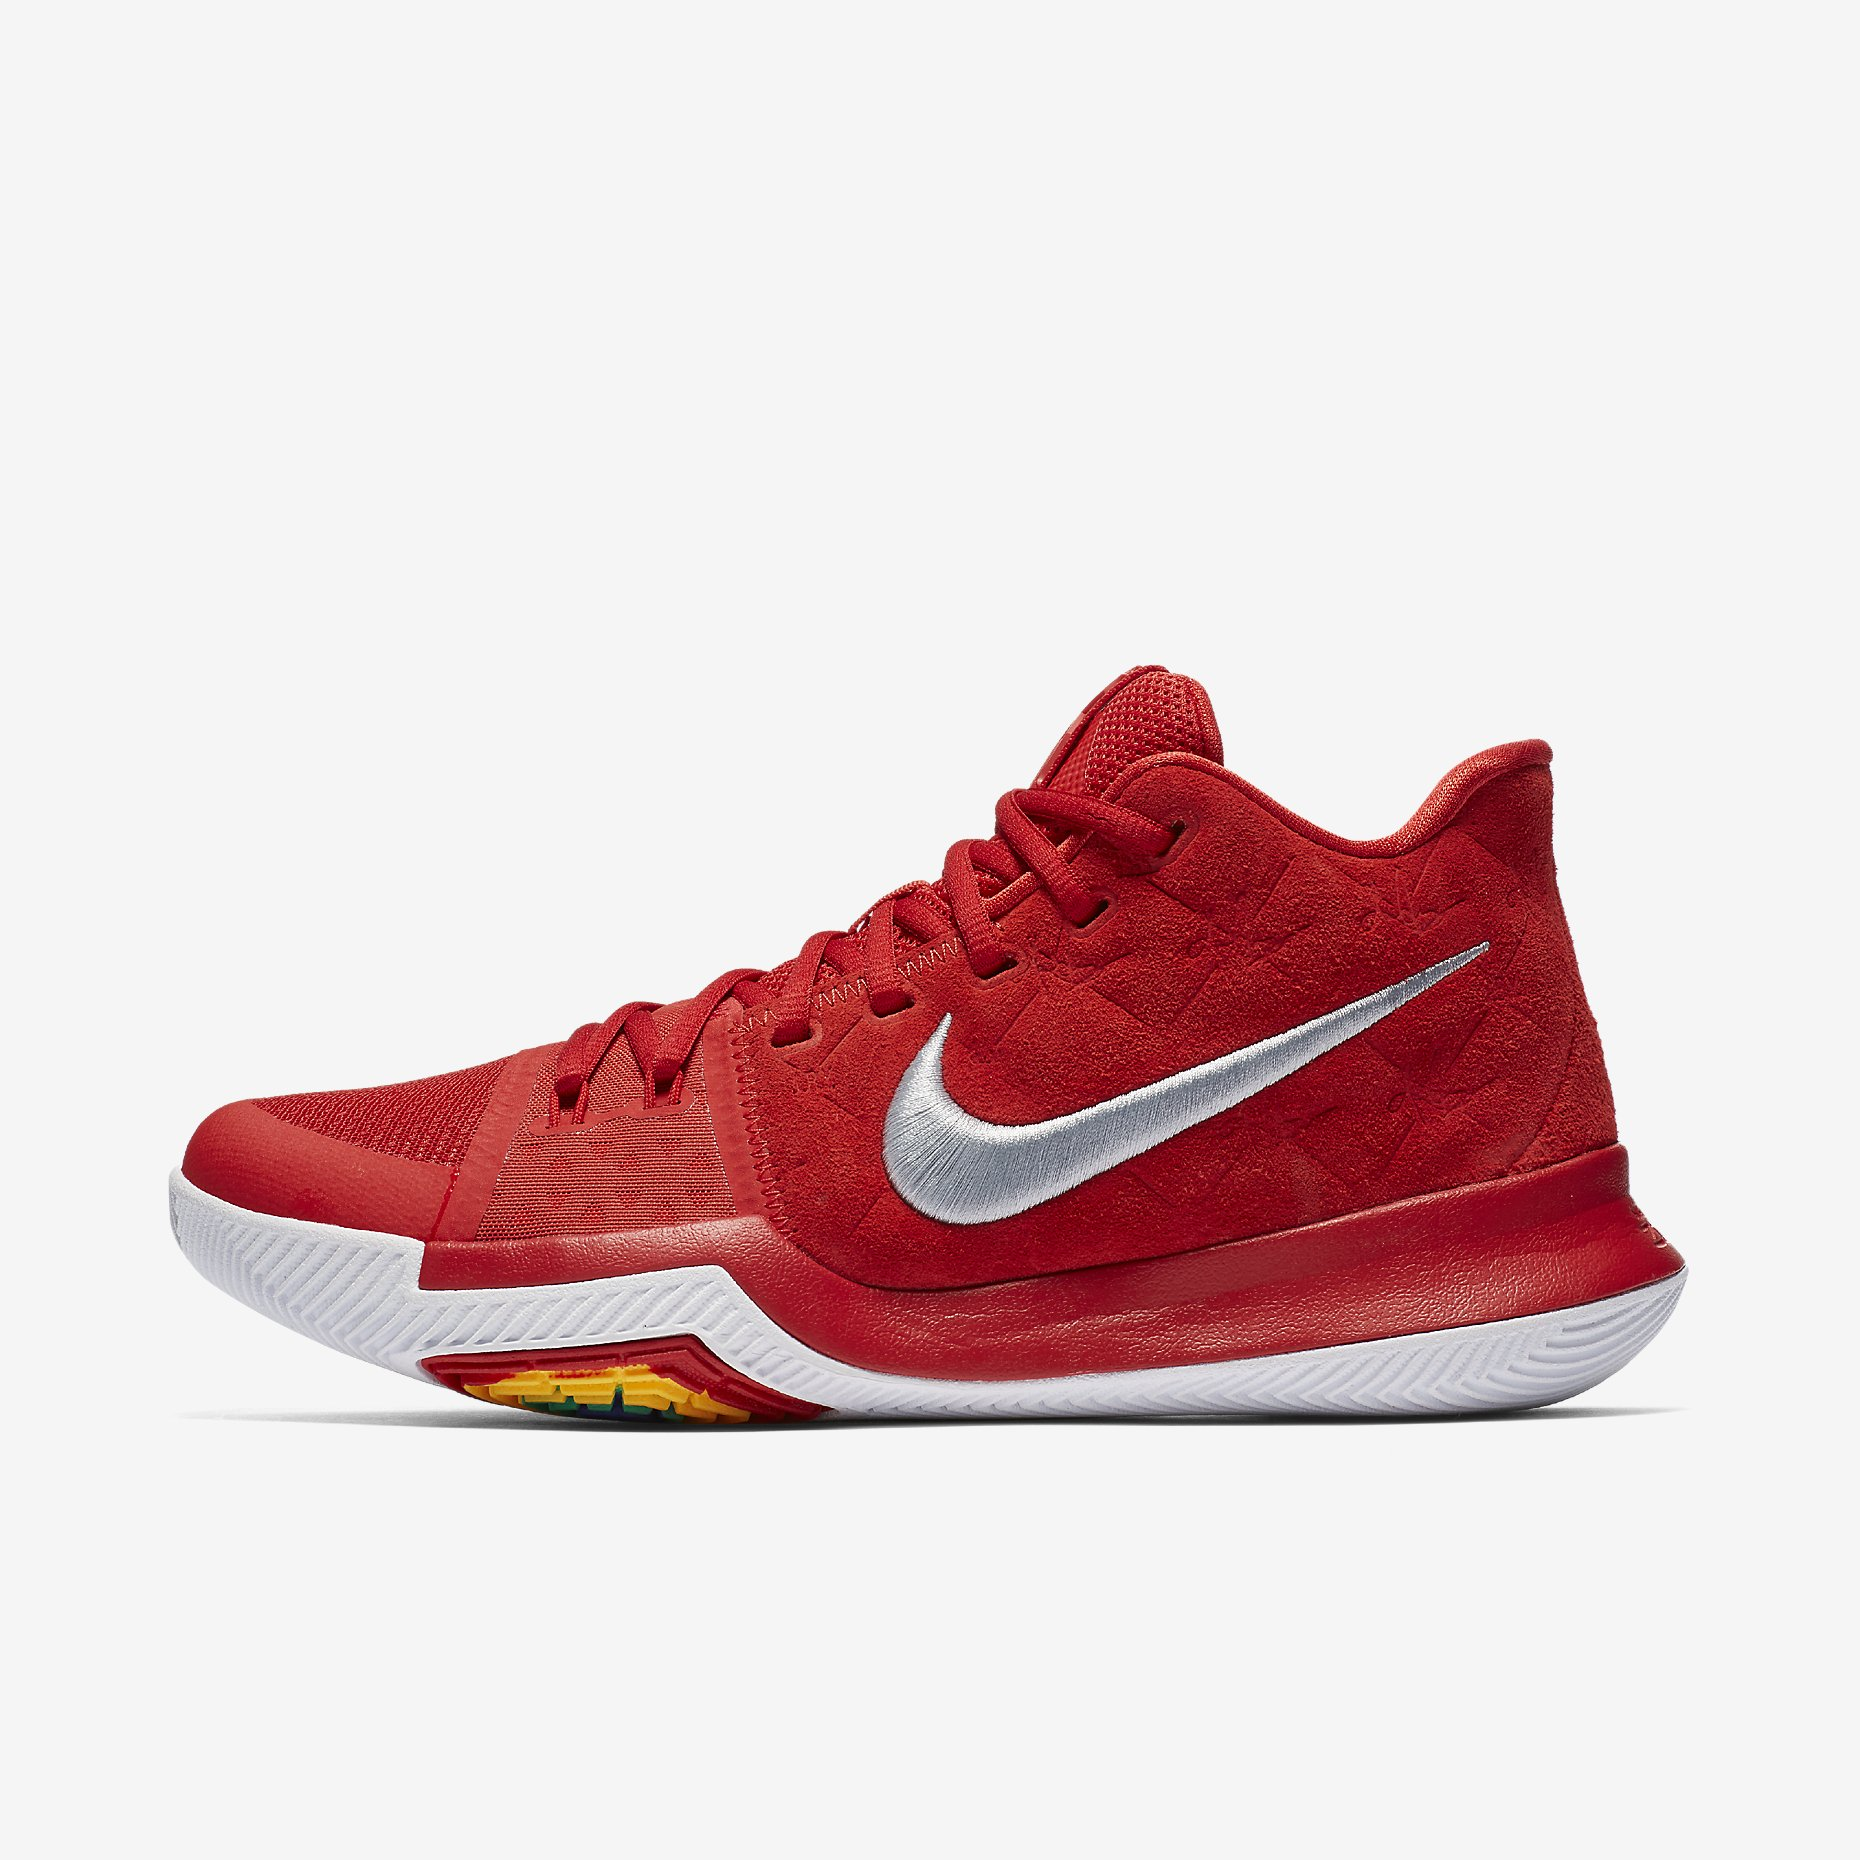 nike-kyrie-3-university-red-suede-2